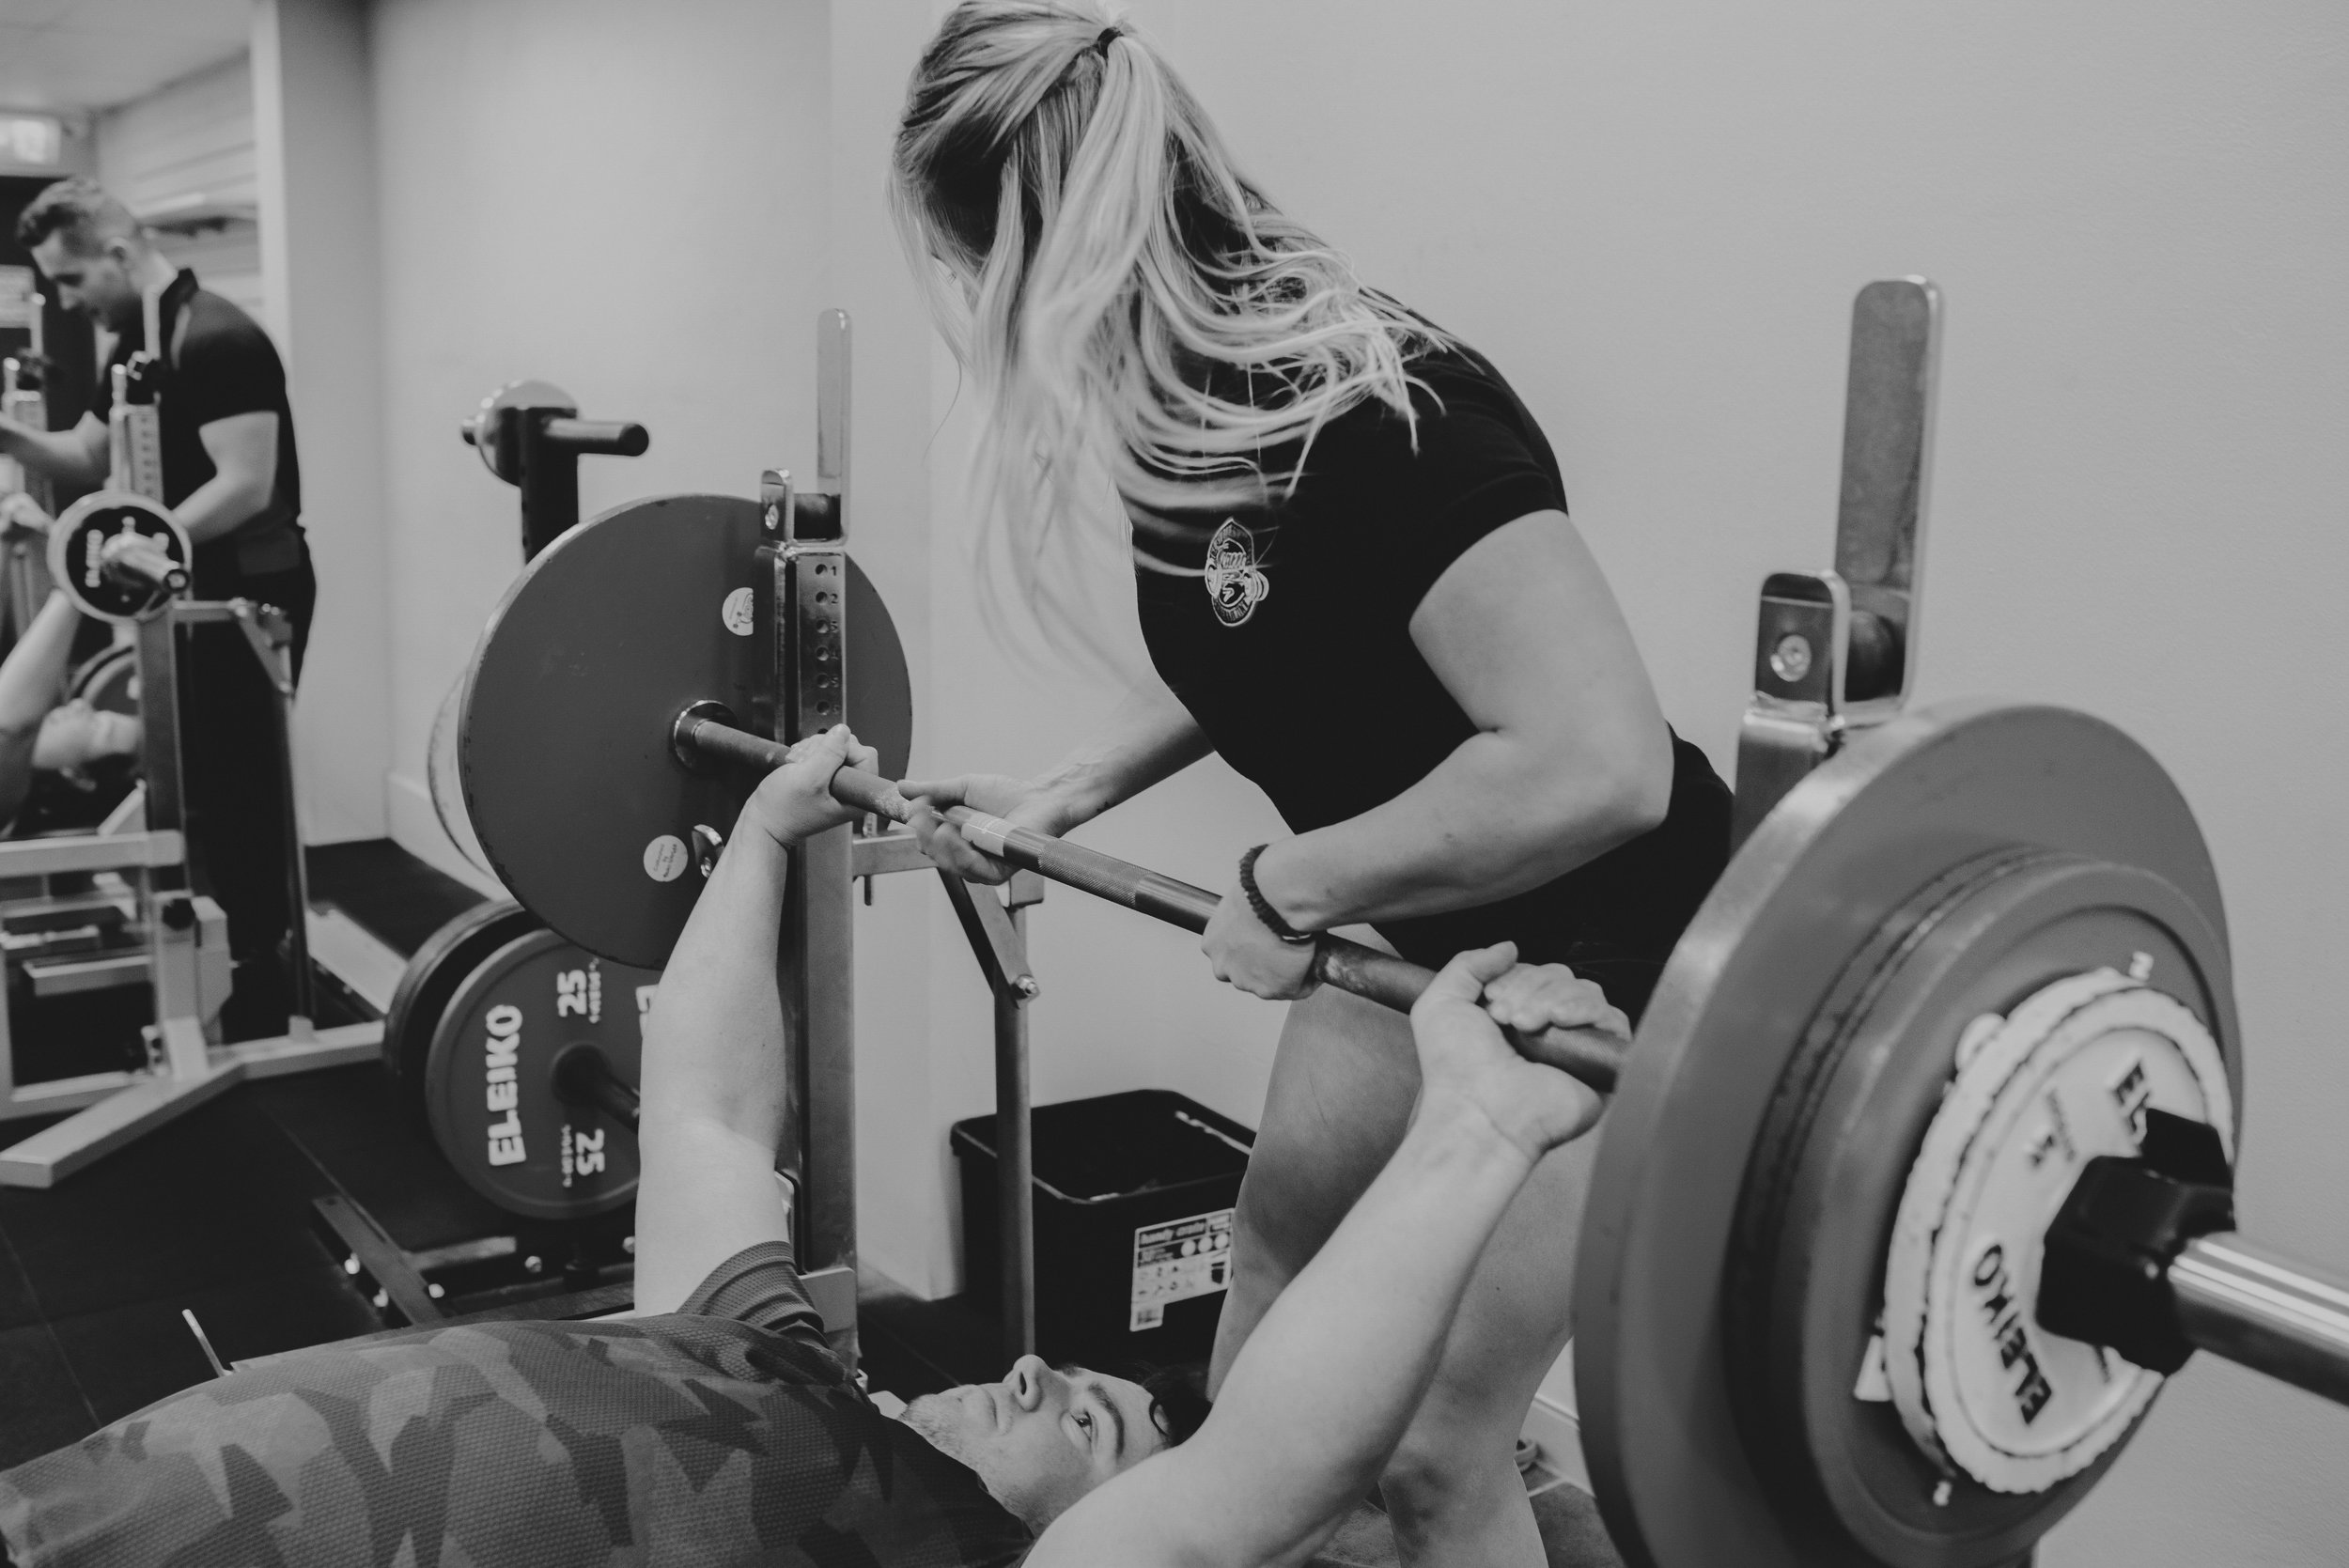 1-1 Coaching - If you are after some 1-1 time with one of our coaches to work on your technique or receive individual programming, this option is for you.Price dependant on trainer.